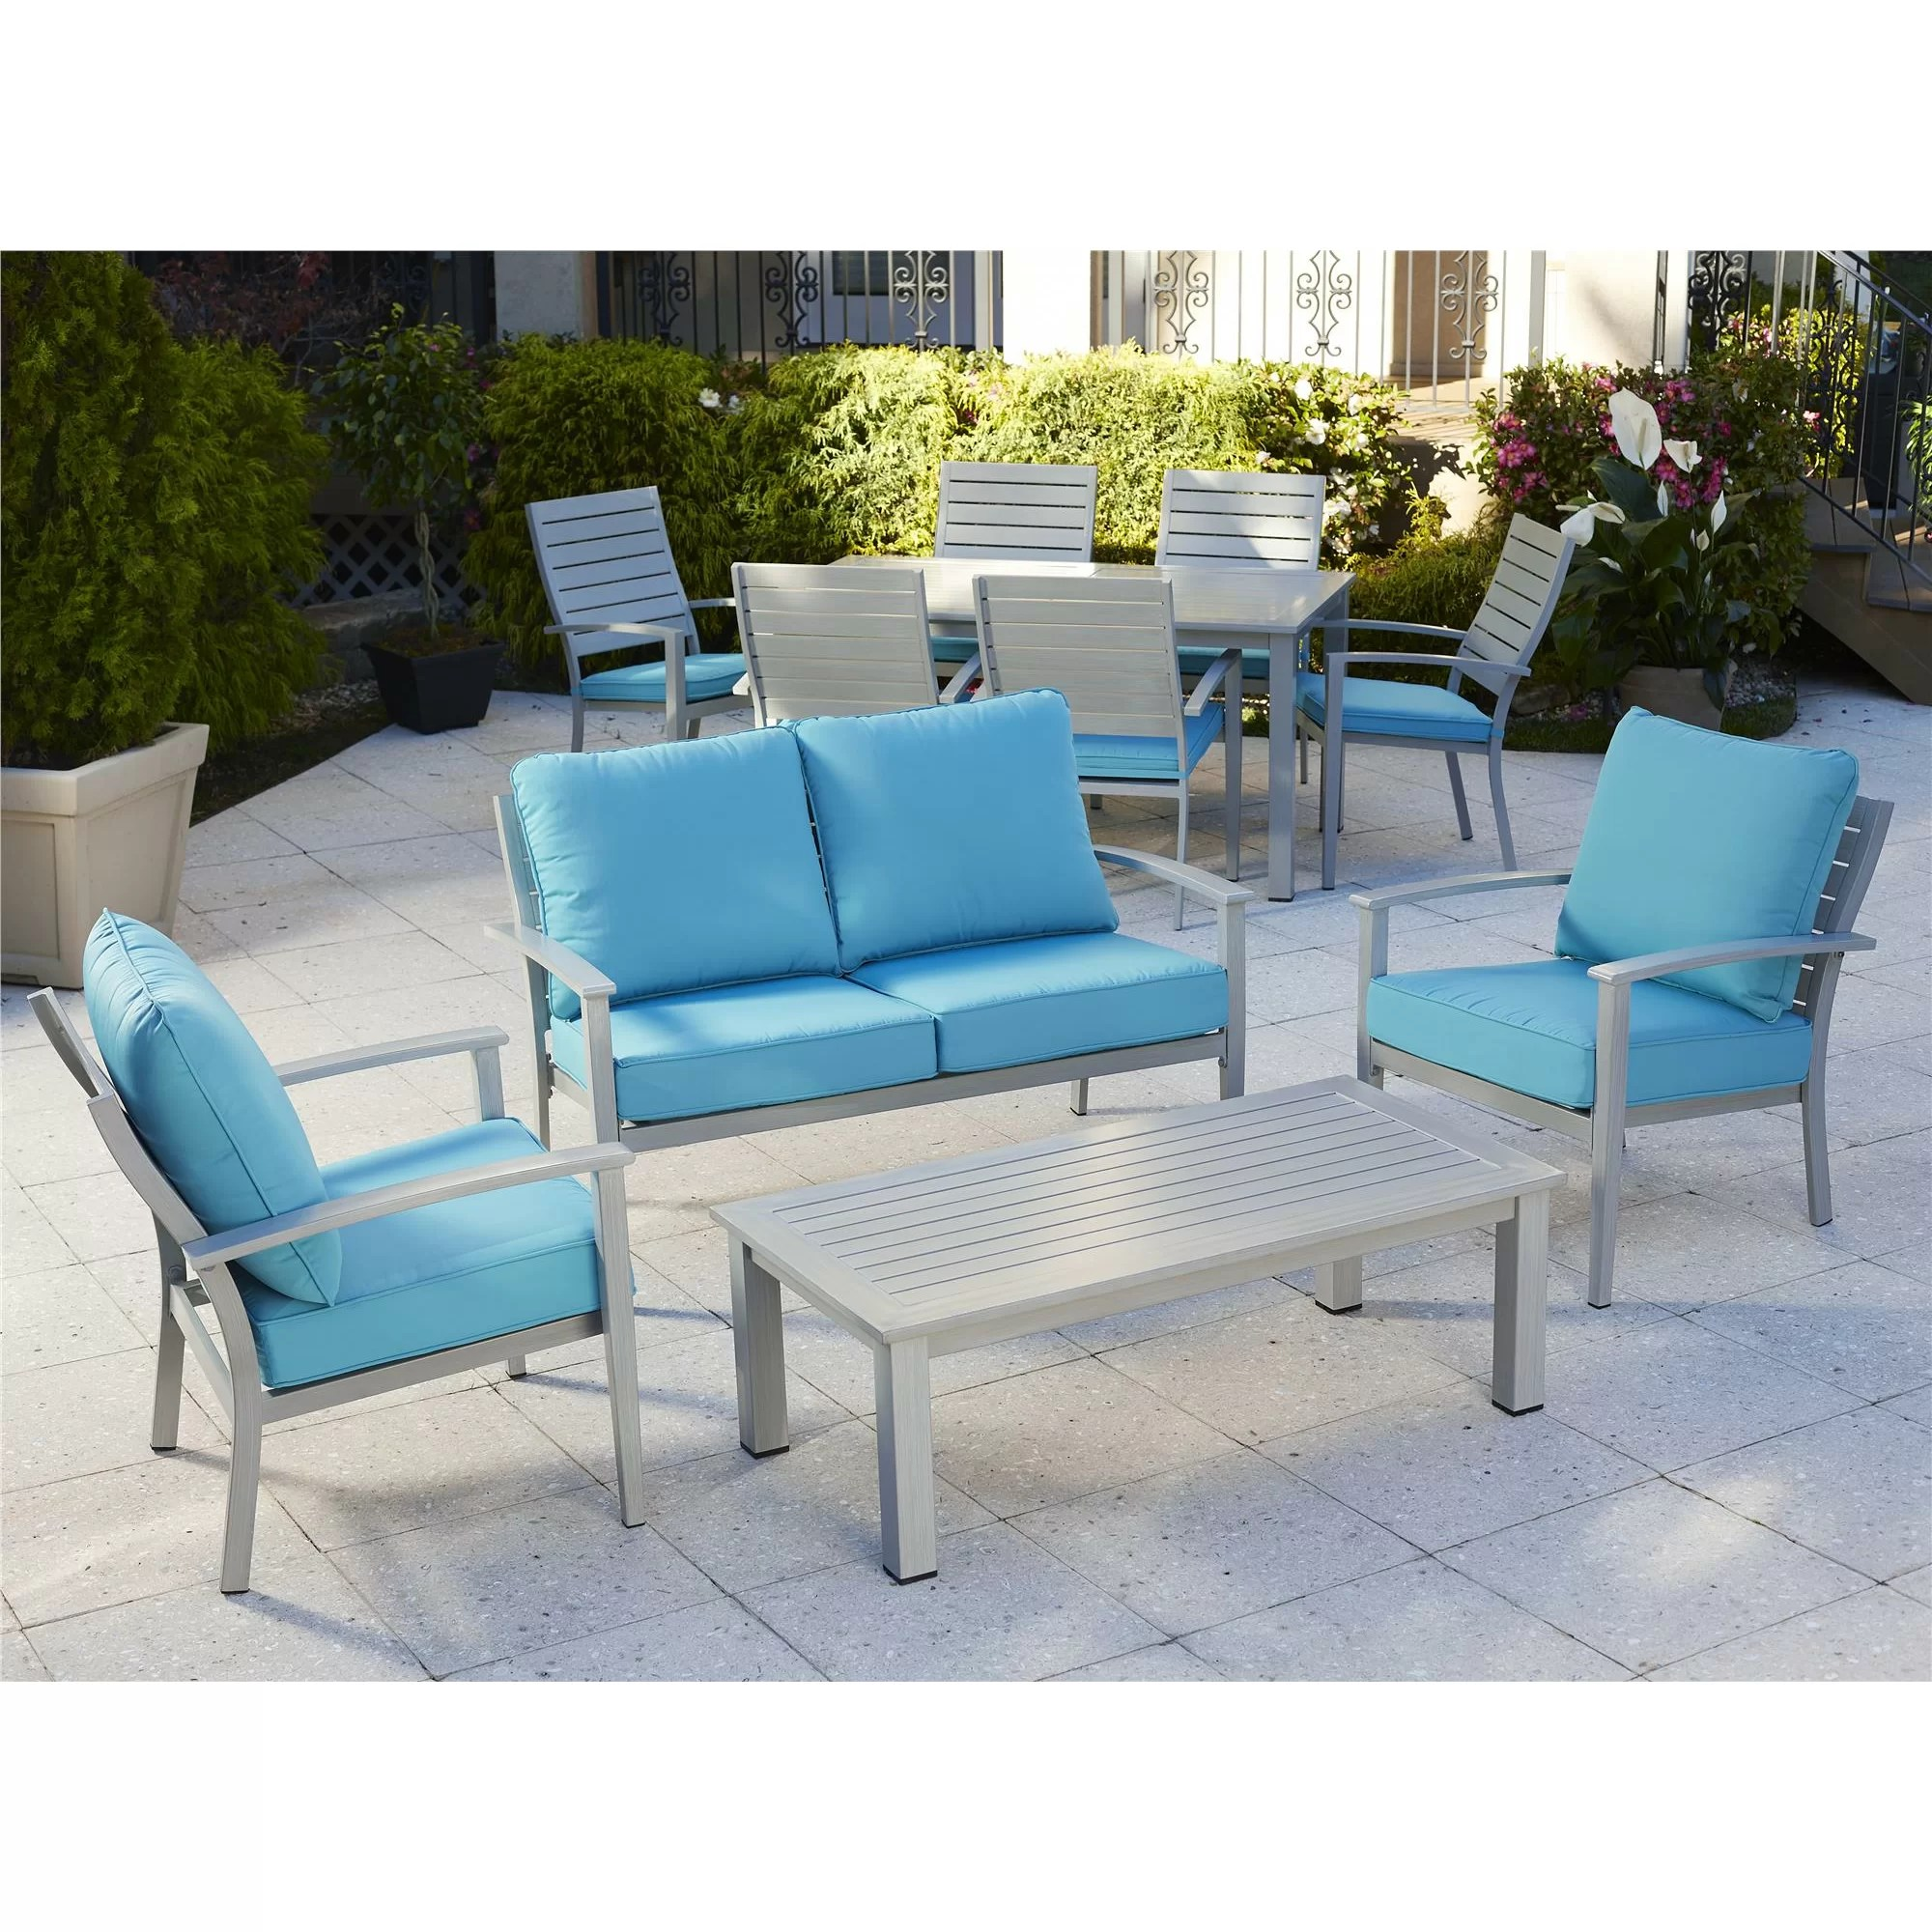 brushed aluminum chairs baby swing chair video outdoor patio furniture 4 piece deep